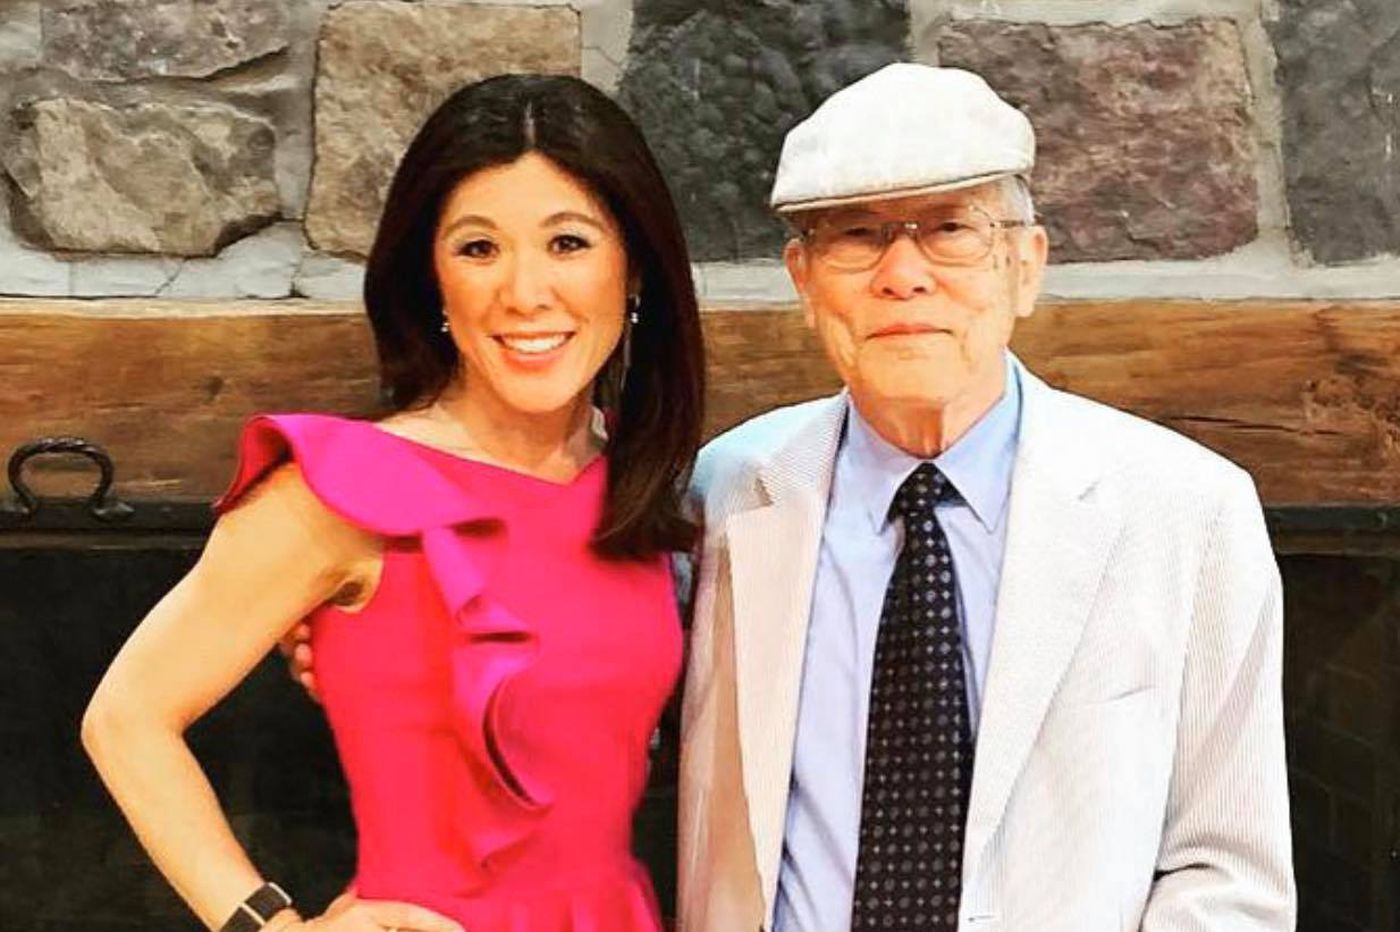 Philly TV anchor: Being Asian doesn't mean I have coronavirus | Perspective